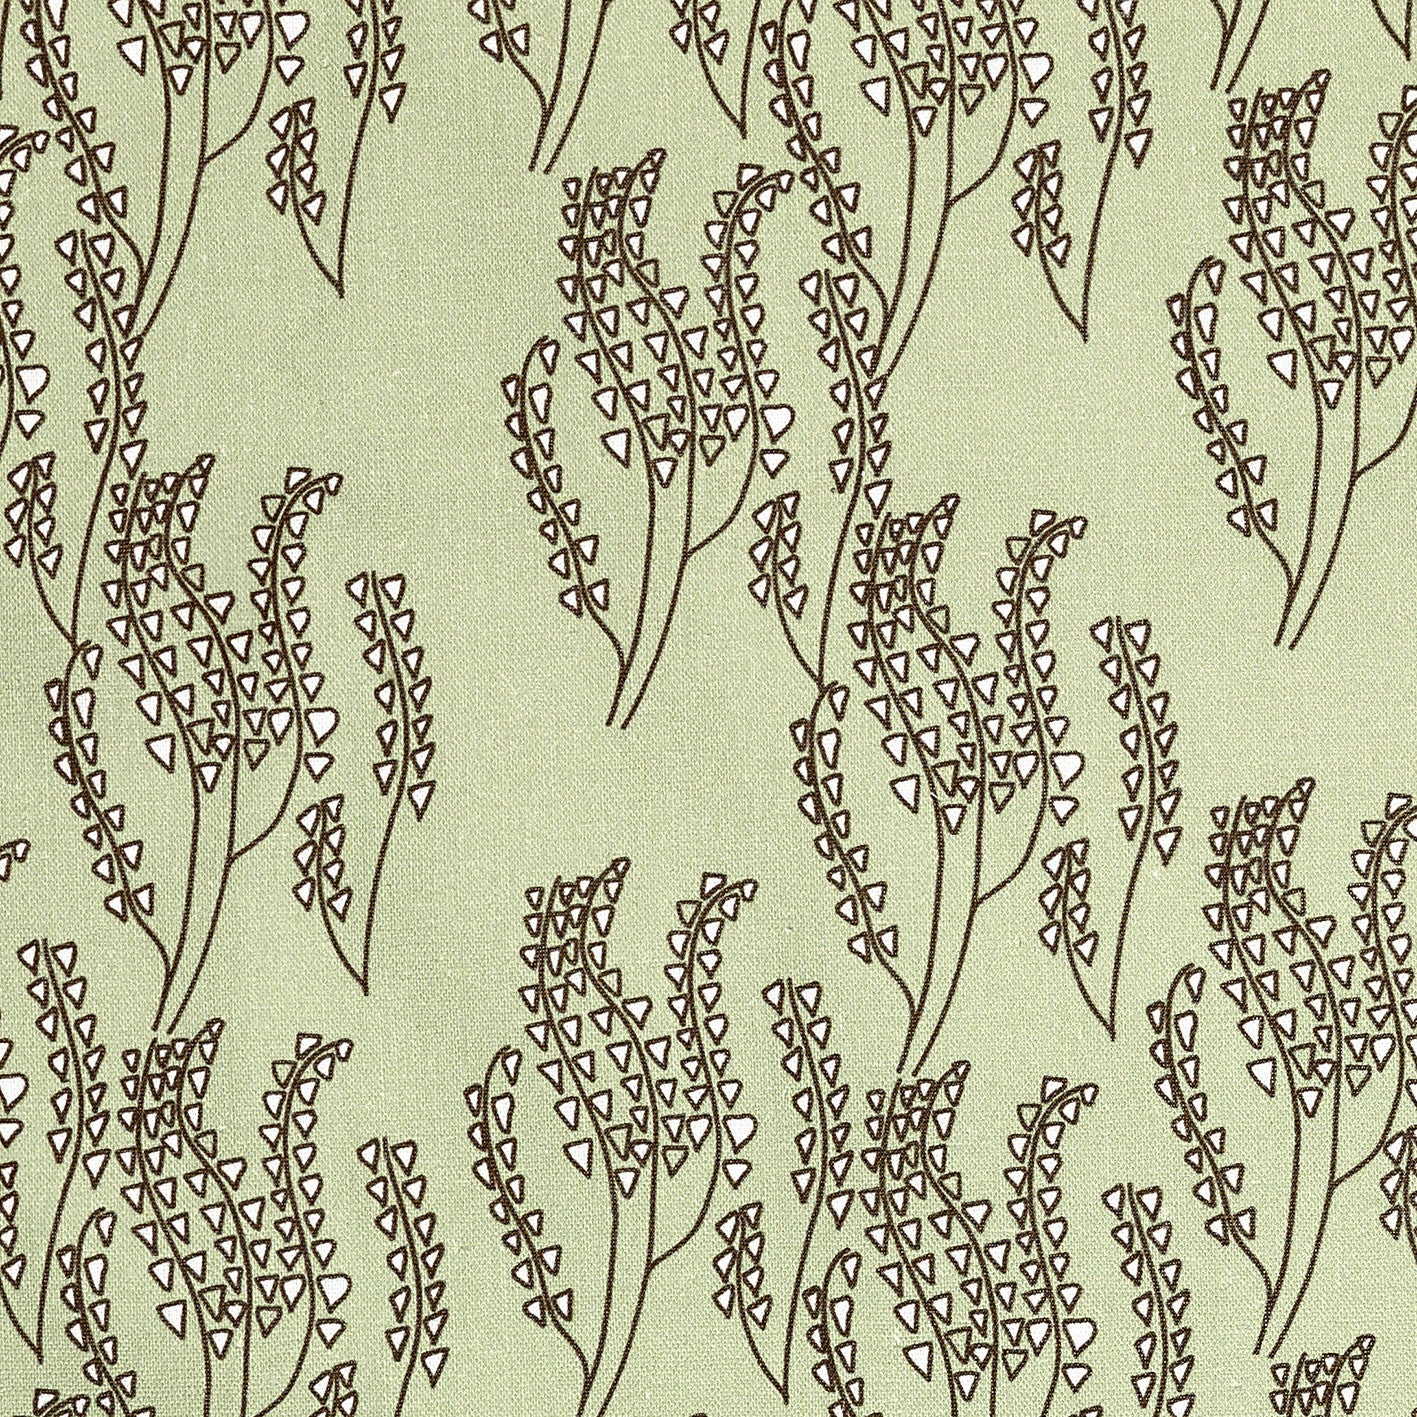 Maricopa Graphic Floral Pattern Cotton Linen Home Decor Fabric by meter or yard for curtains, blinds, upholstery in Light Eau de Nil Green and Grey Ships from Canada (USA)